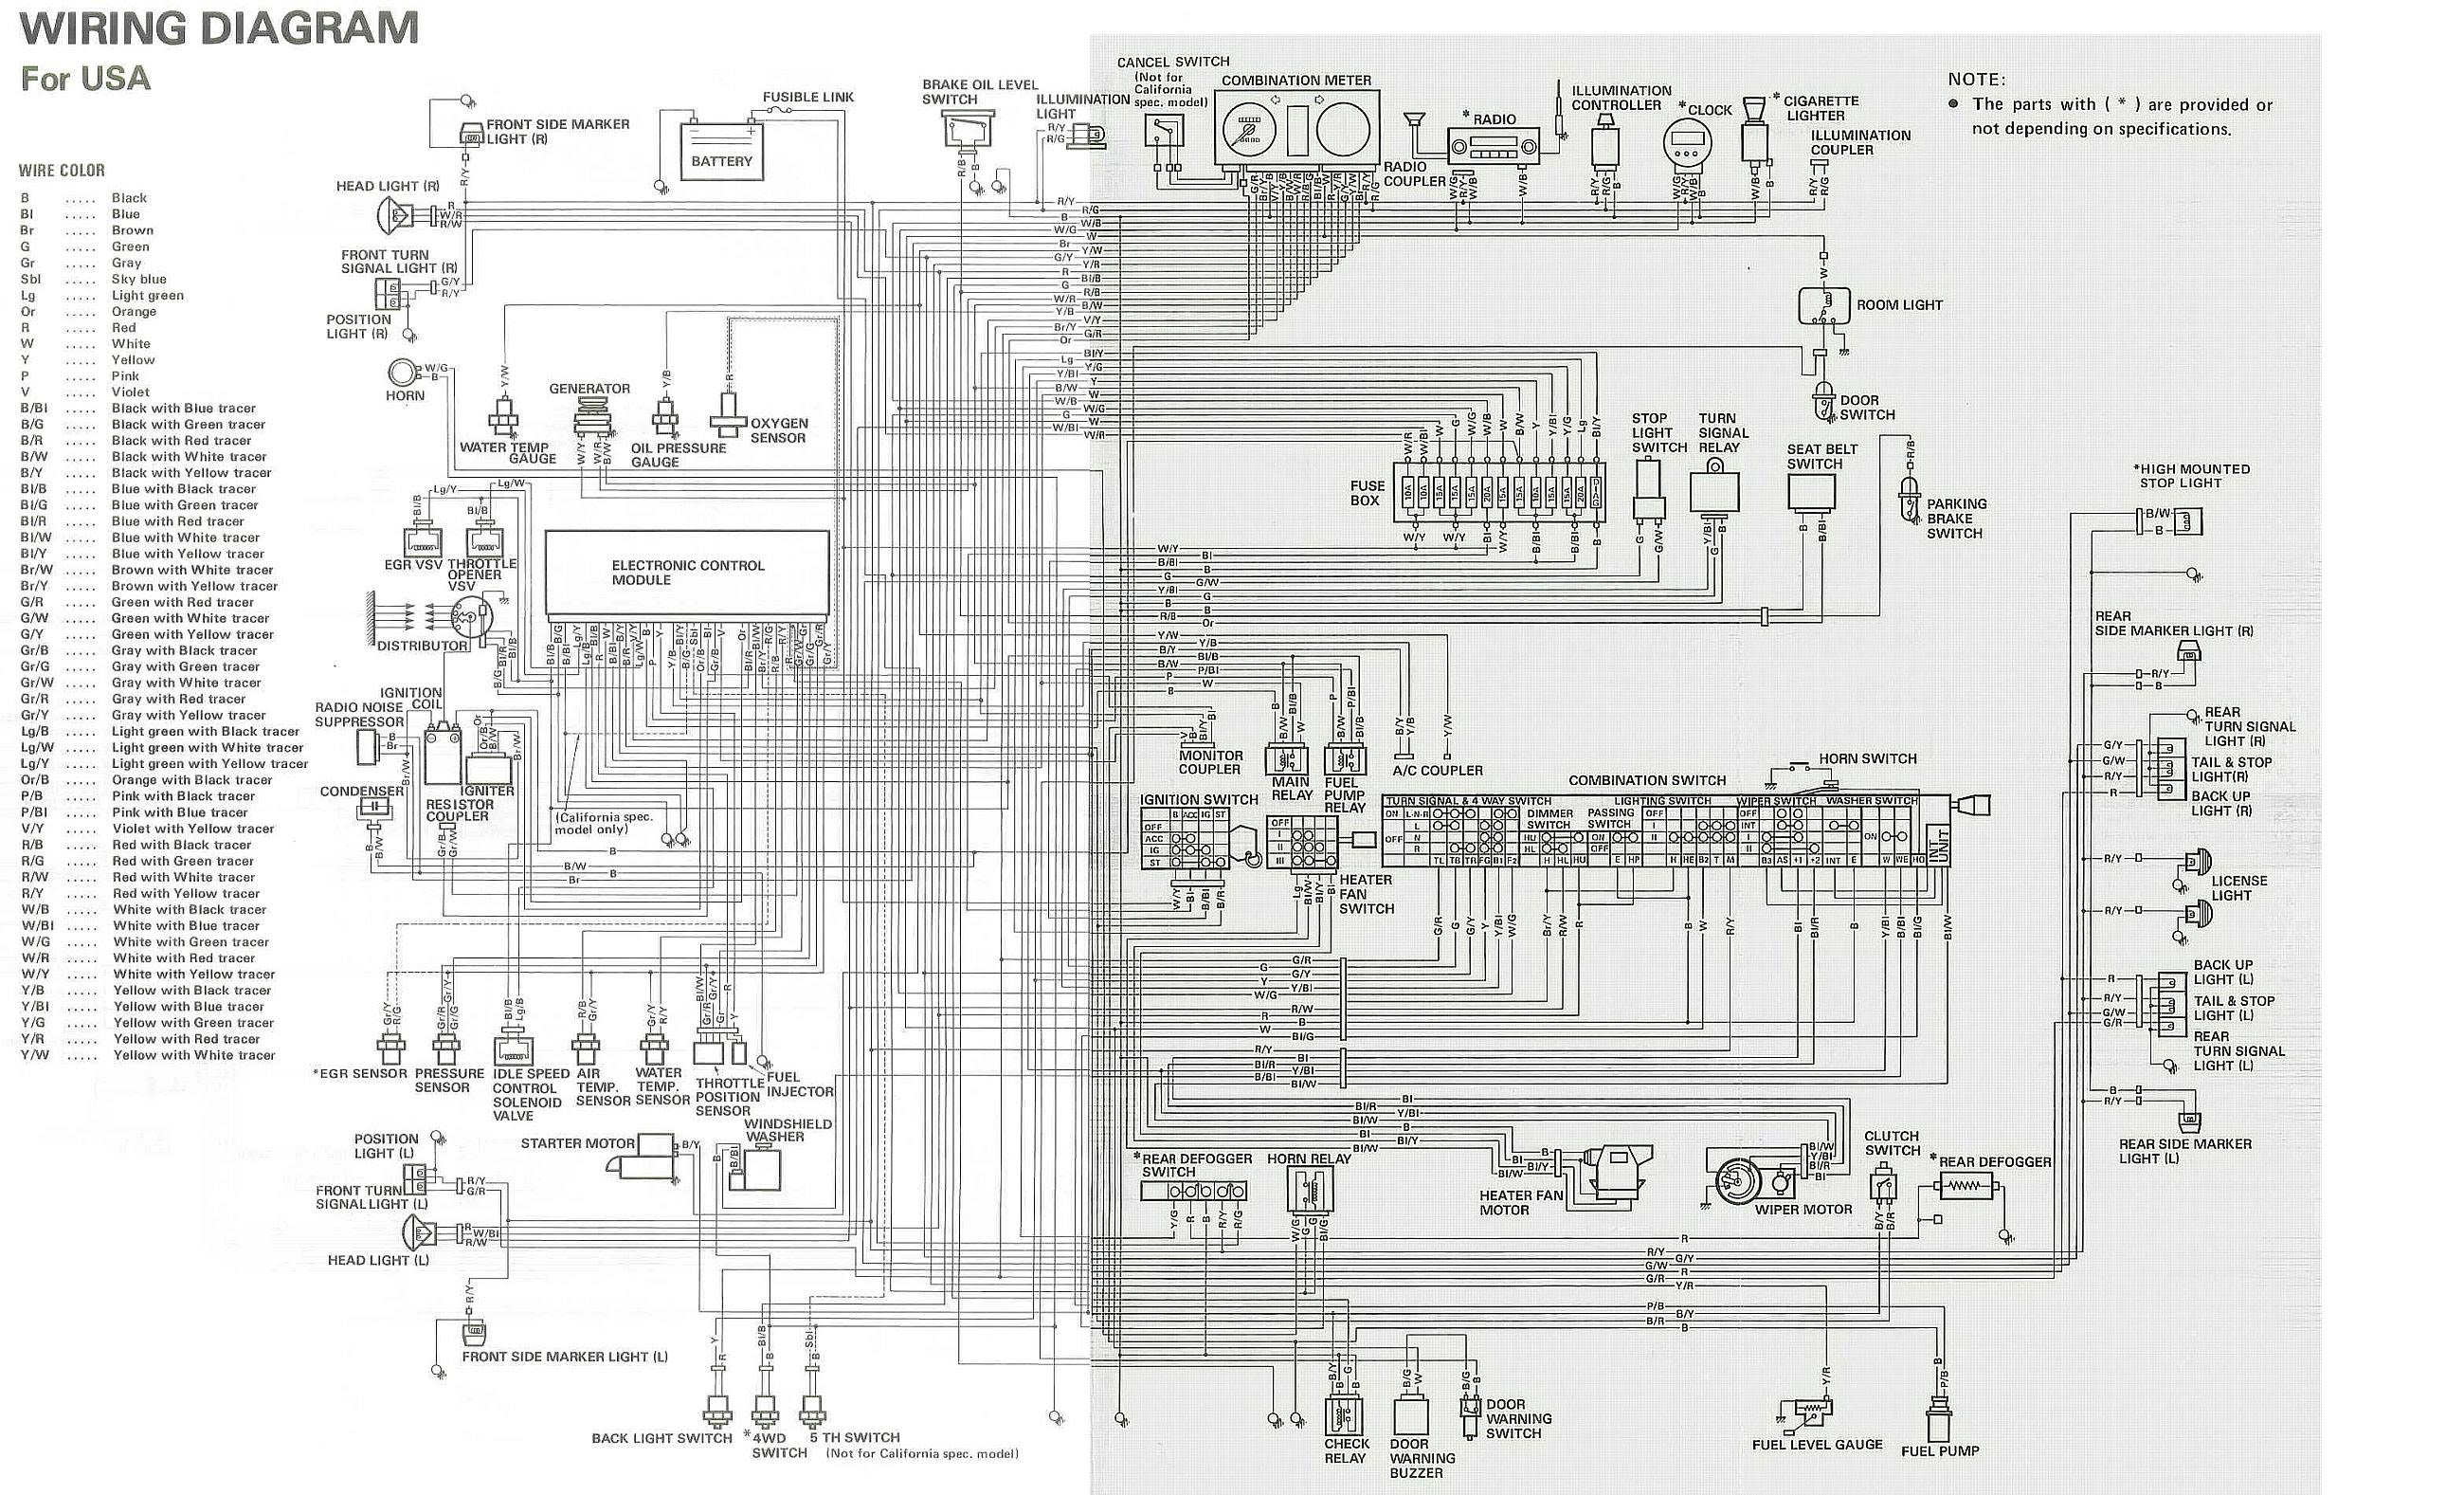 Suzuki Alto Wiring Diagram - Wiring Diagram Data Schema on freightliner electrical wiring diagrams, freightliner cab light wiring, freightliner tail lights, freightliner ignition switch wiring, freightliner columbia wiring diagrams, freightliner m2 brake light switch, freightliner century dash light wiring, freightliner trucks diagram, freightliner fl70 fuse box diagram, freightliner air system diagram, 2006 freightliner columbia heater diagram, freightliner m2 wiring diagrams, freightliner columbia fuse panel diagram,